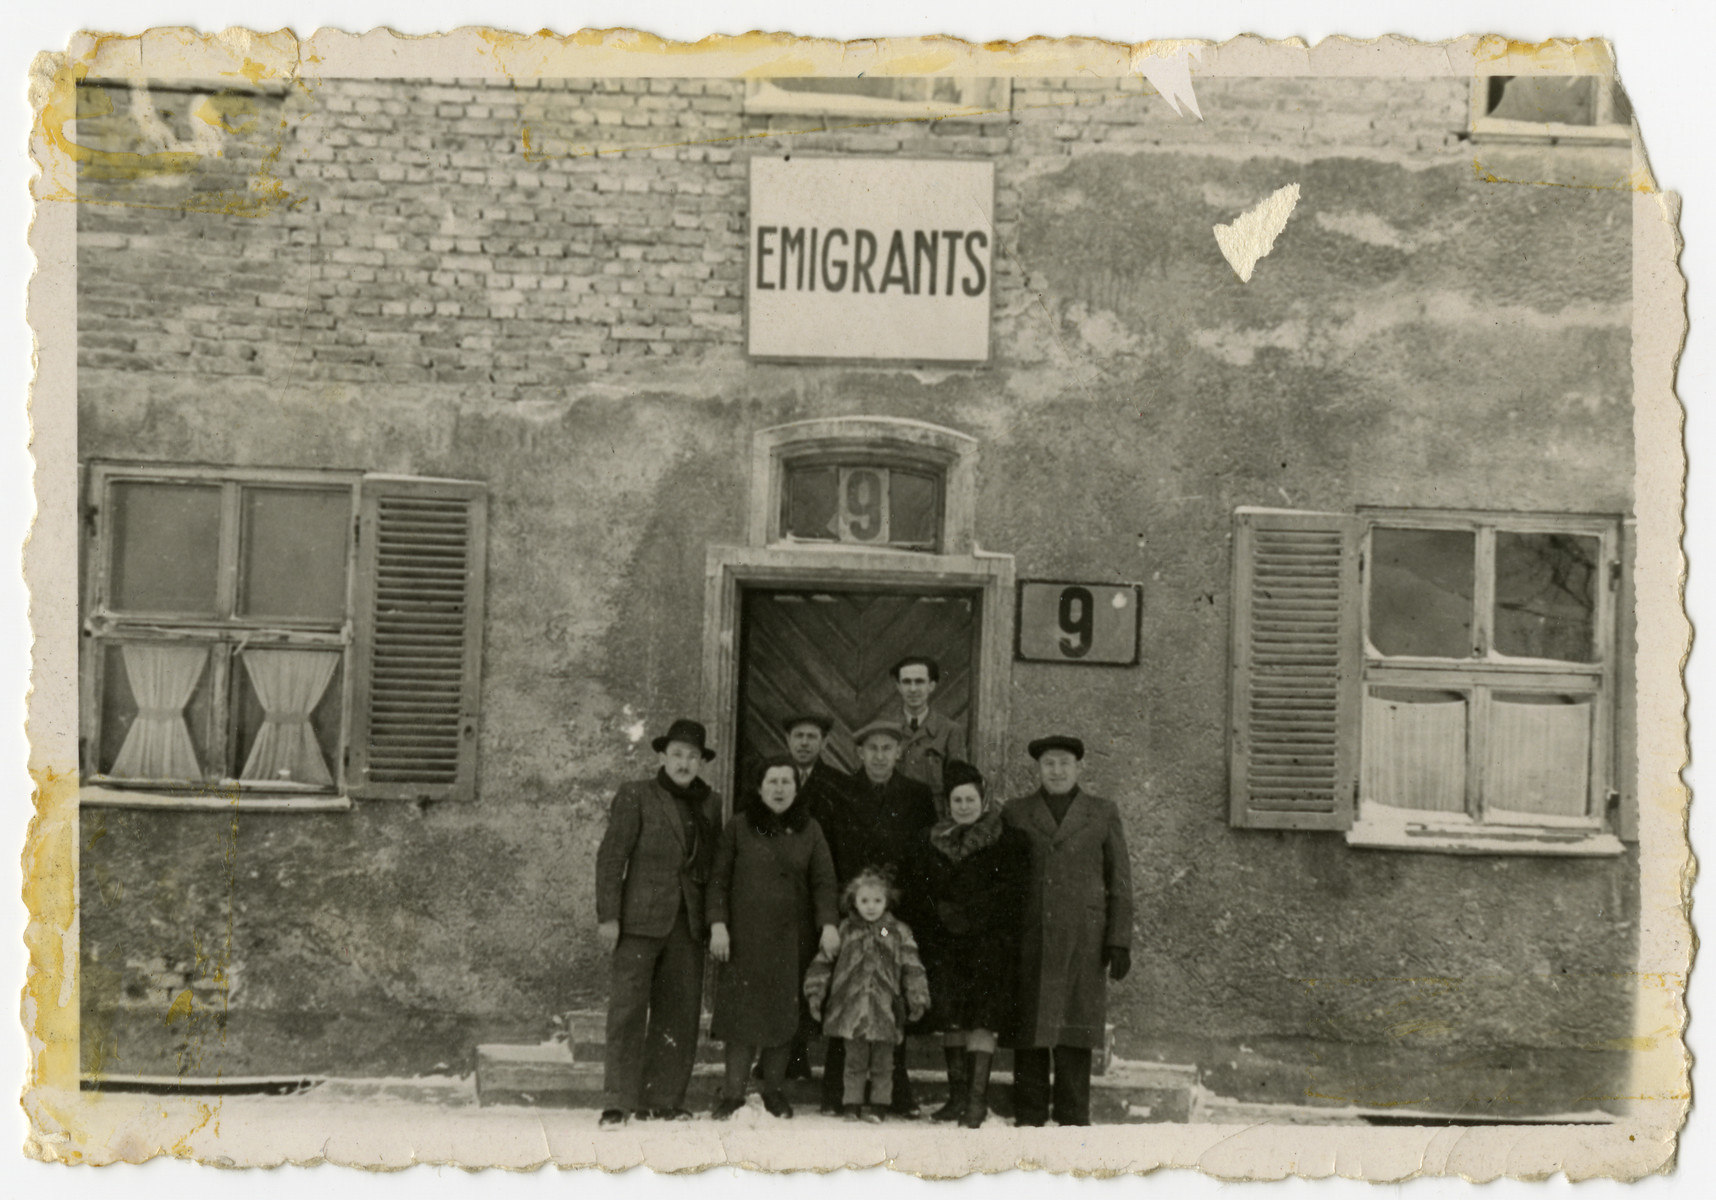 Jewish displaced persons pose in front of the emigration office in Bamberg.  From left to right in the front are Solomon, Ruchla and Frieda Zynstein.